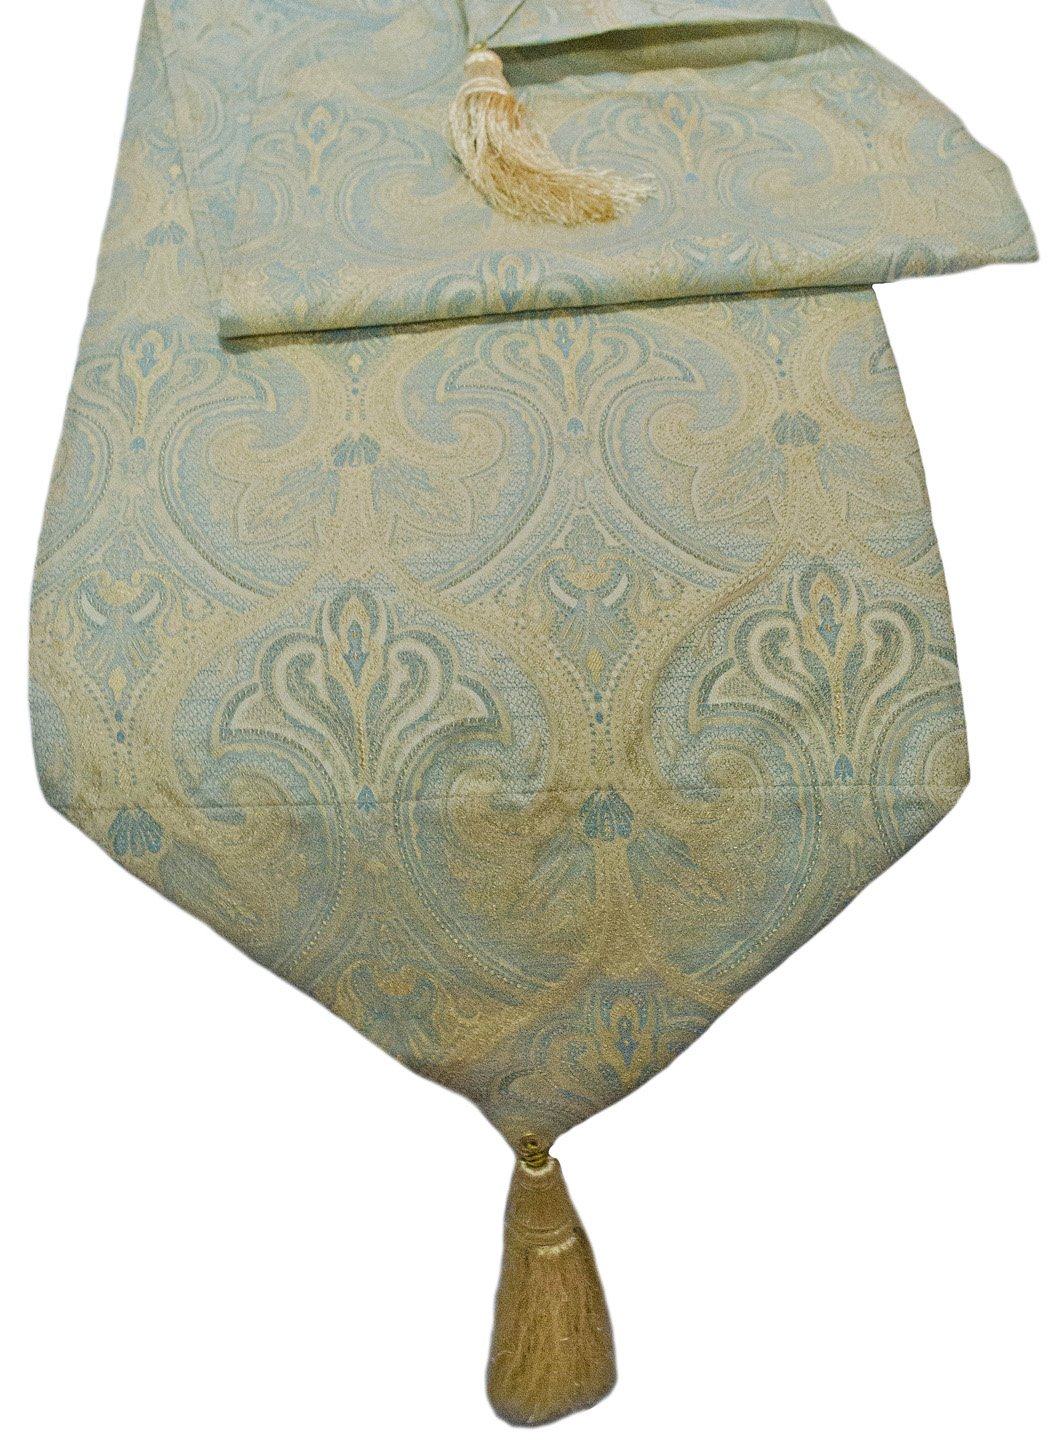 Paisley Damask Table Runner Tassel Mint Green Ivory Gold